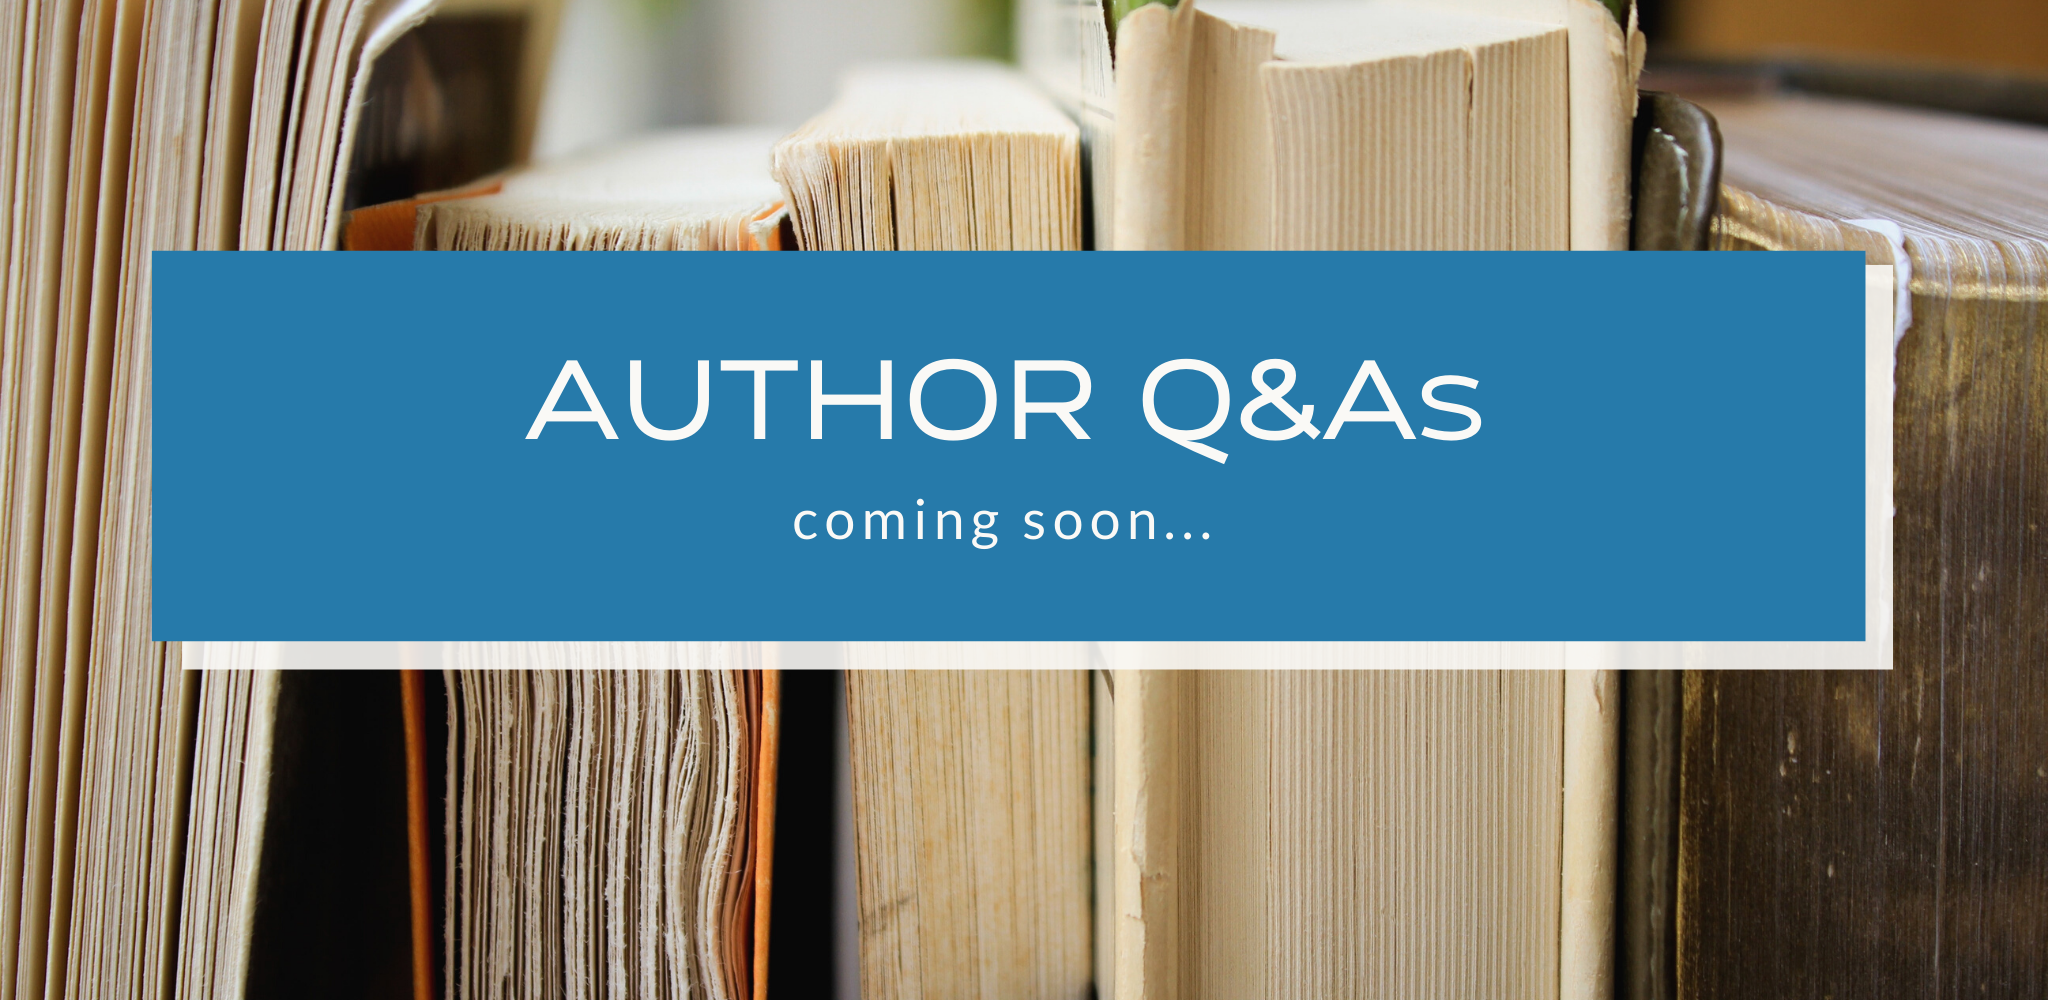 Author Q&As – COMING SOON